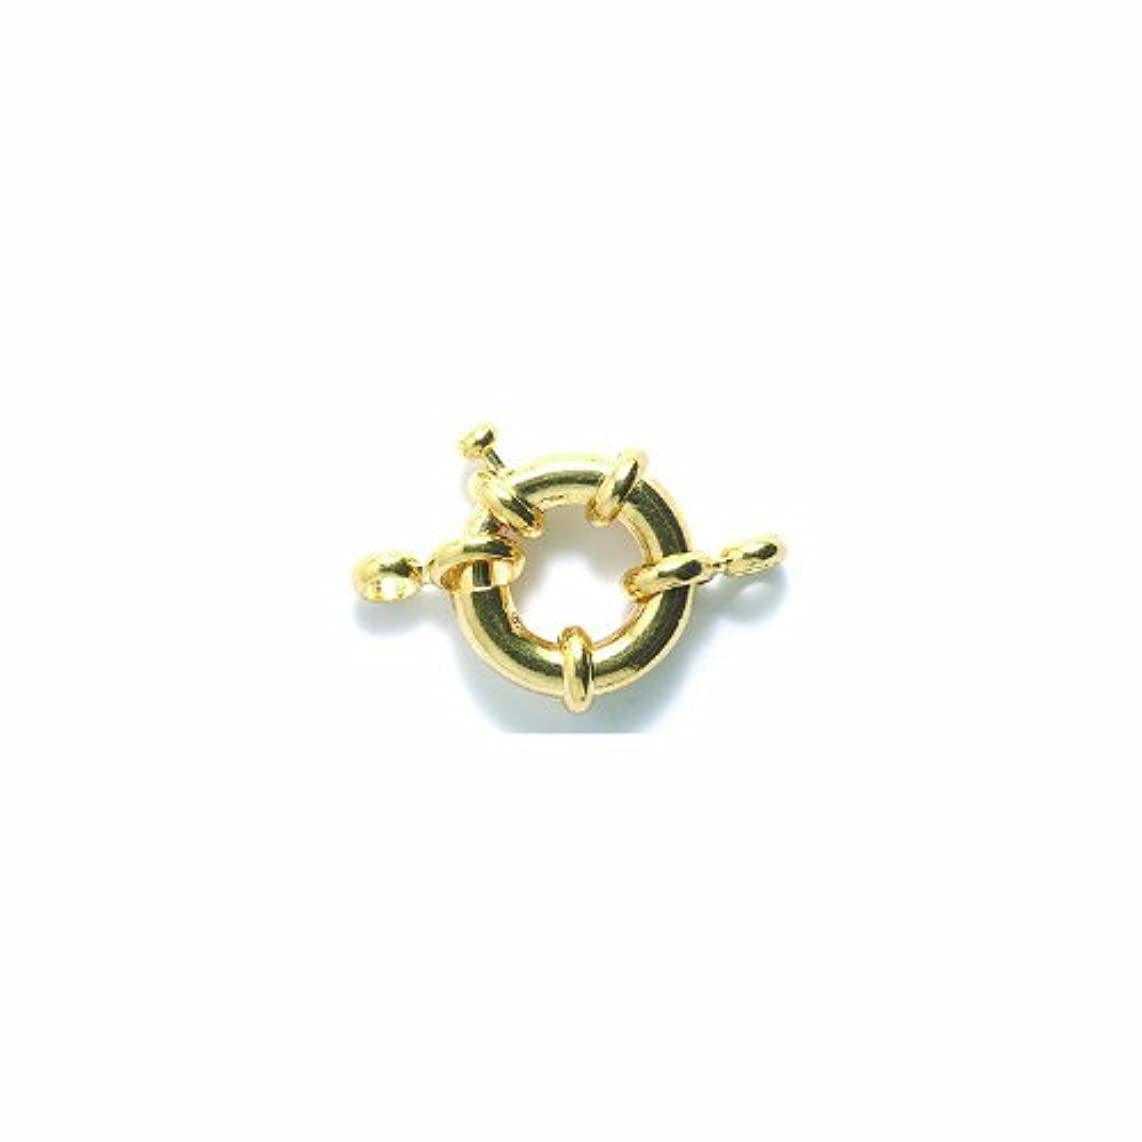 Shipwreck Beads Brass Spring Clasp with Connector, 15 mm, Gold, Set of 4